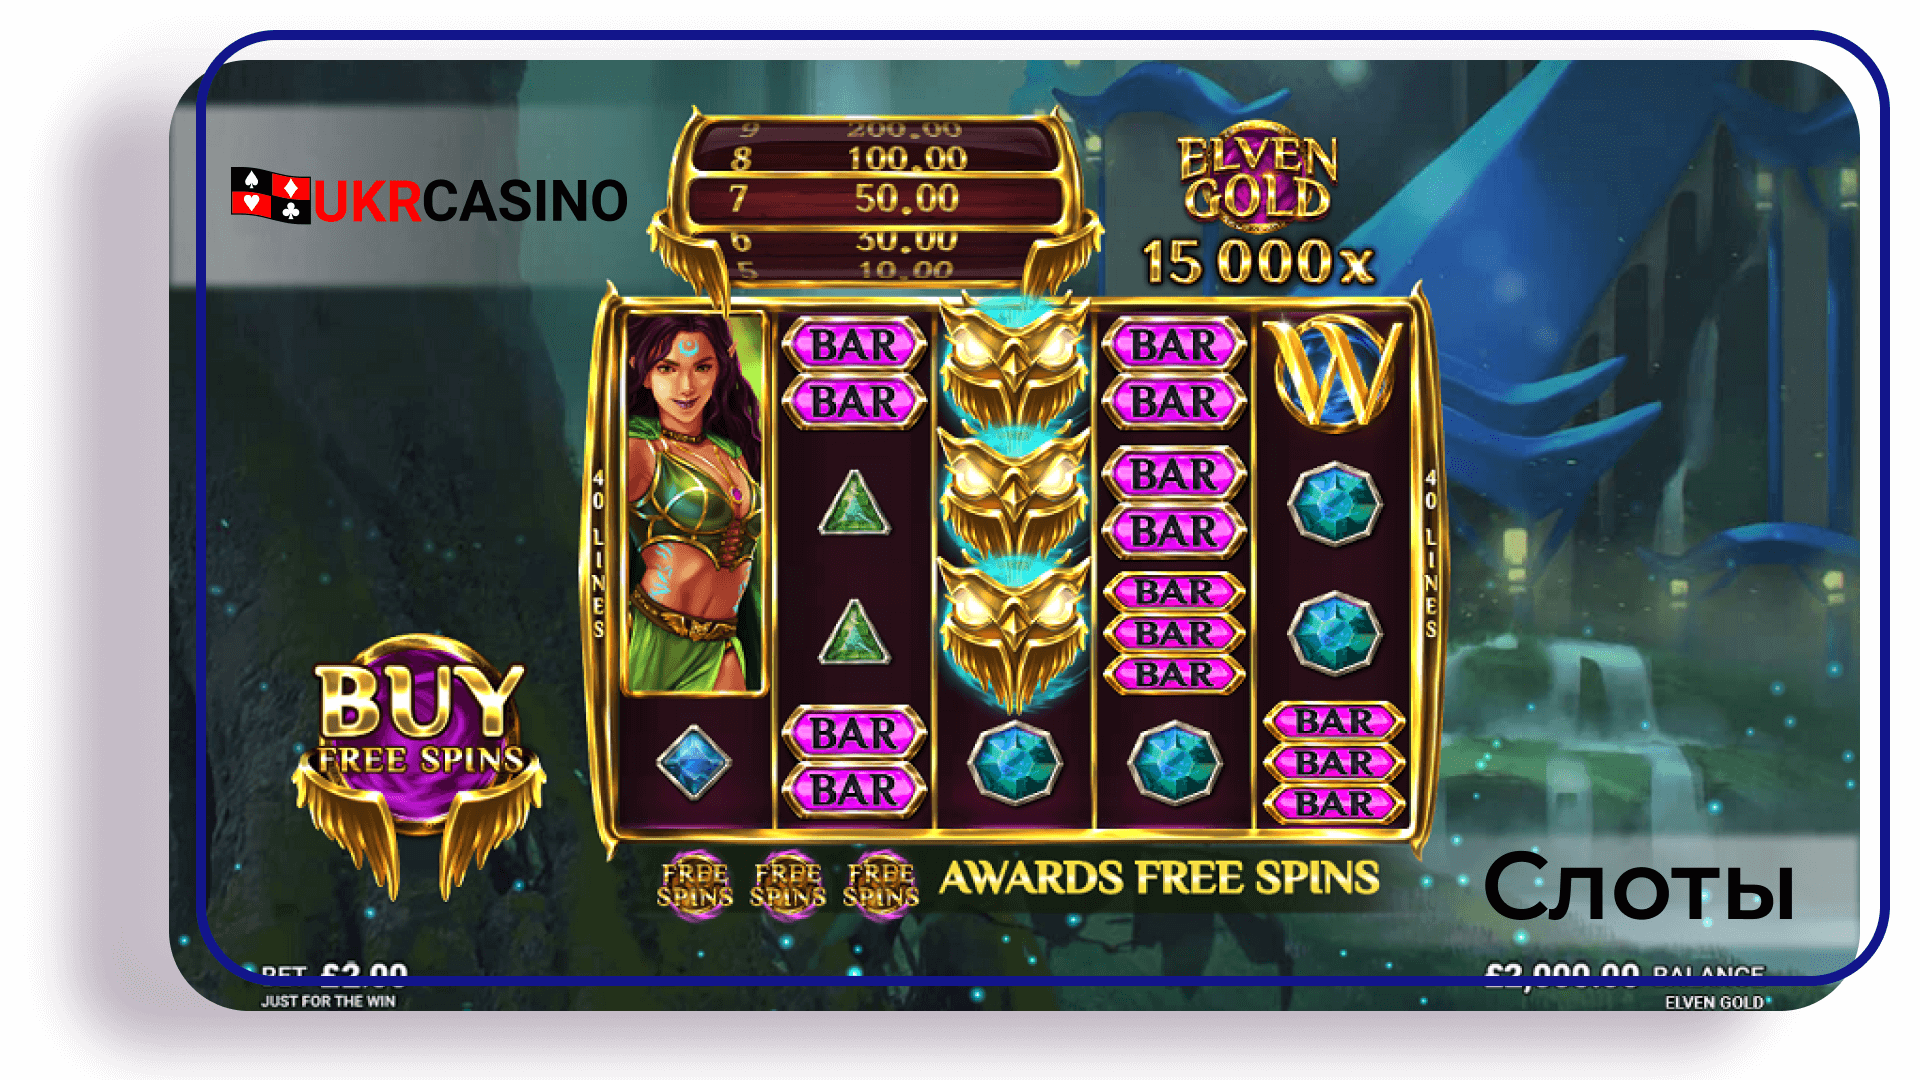 Elven Gold - Microgaming